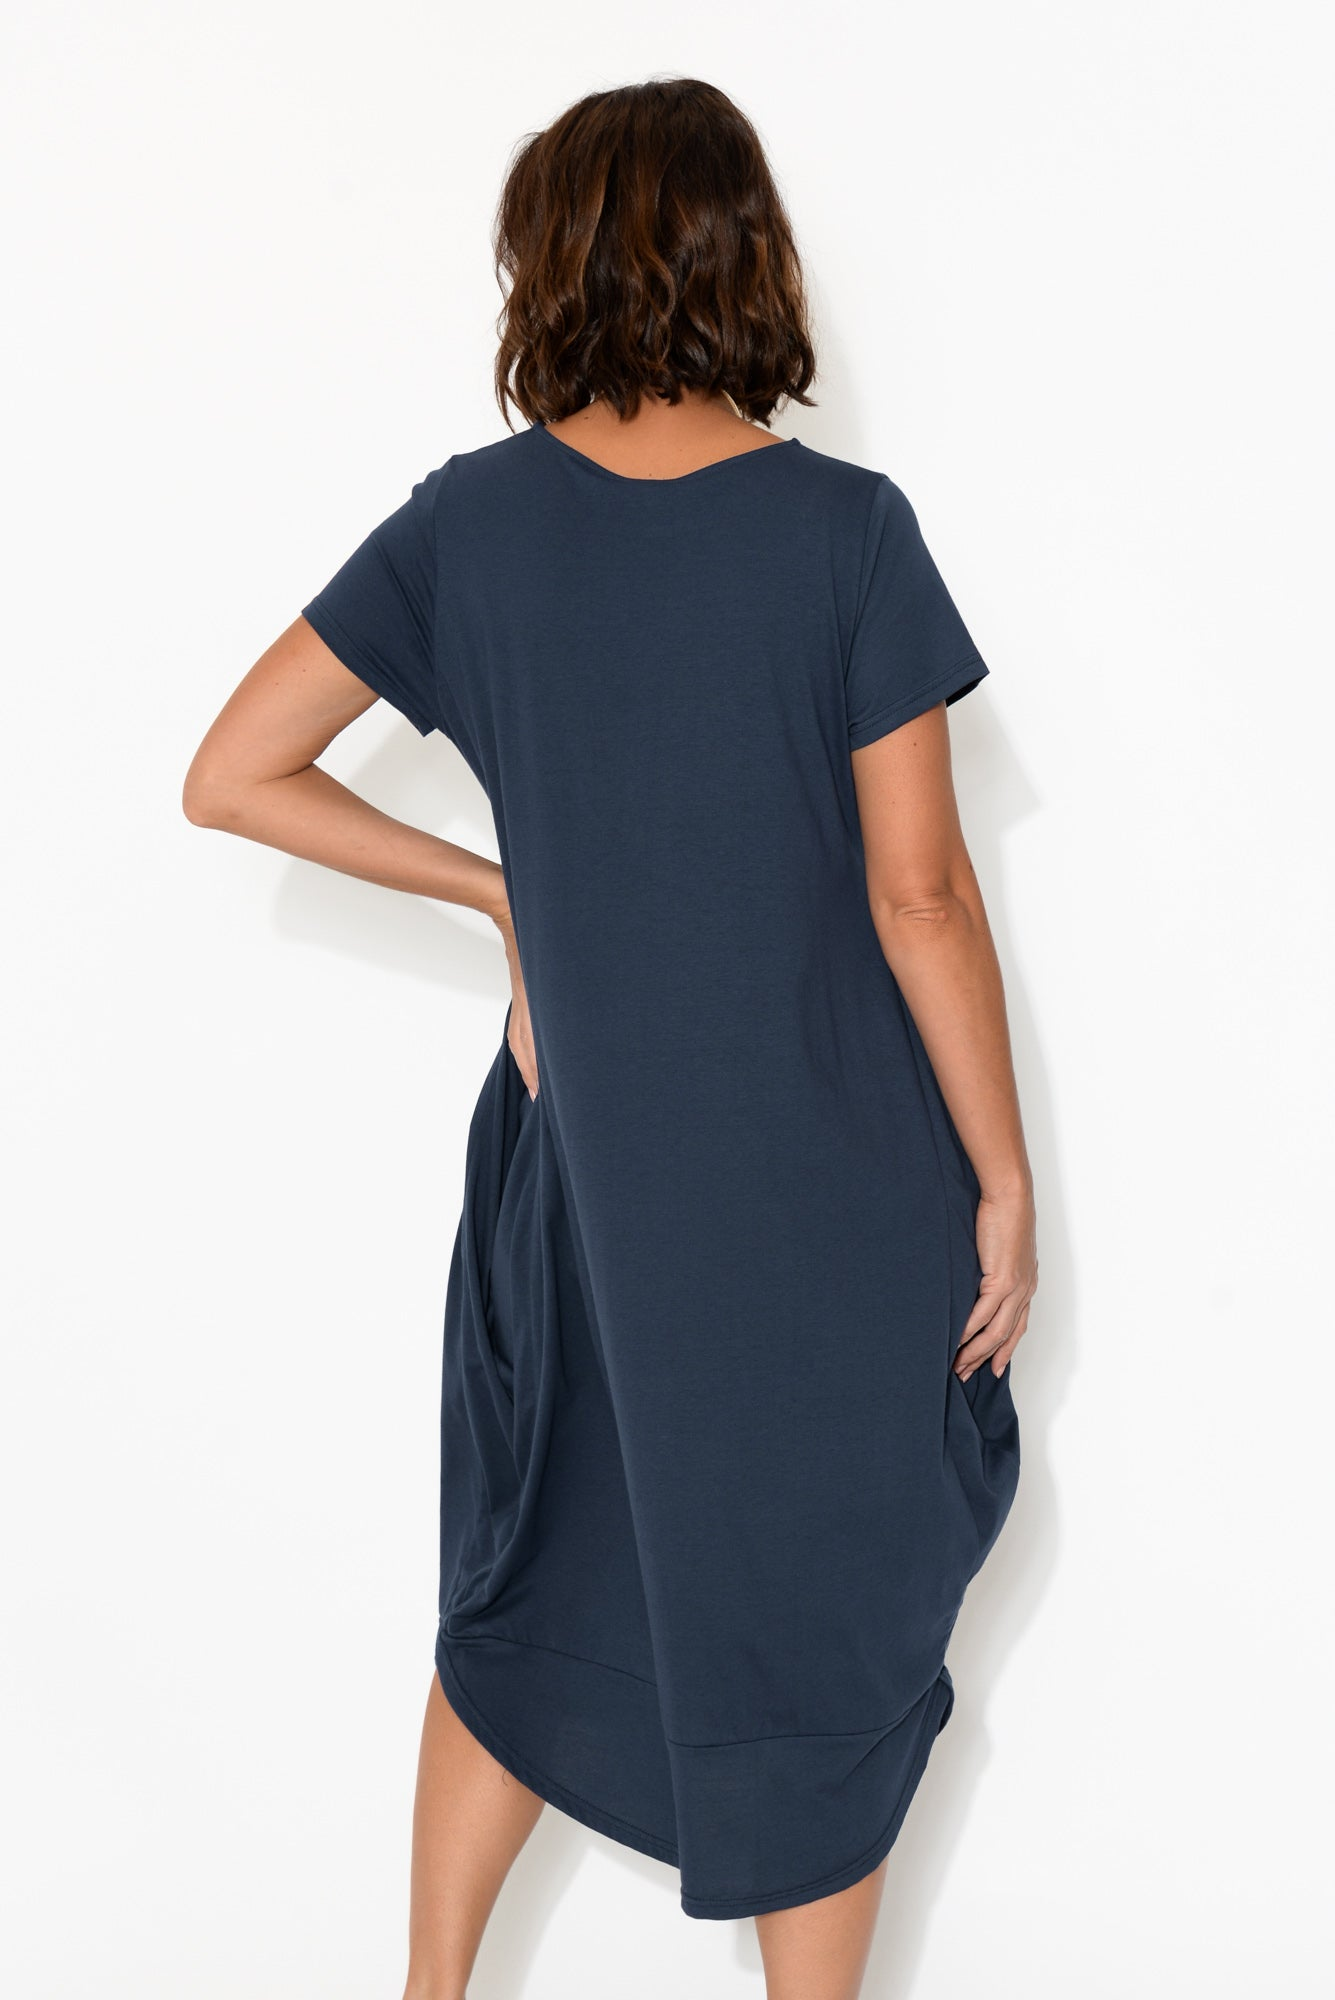 Cooper Navy Cotton Dress